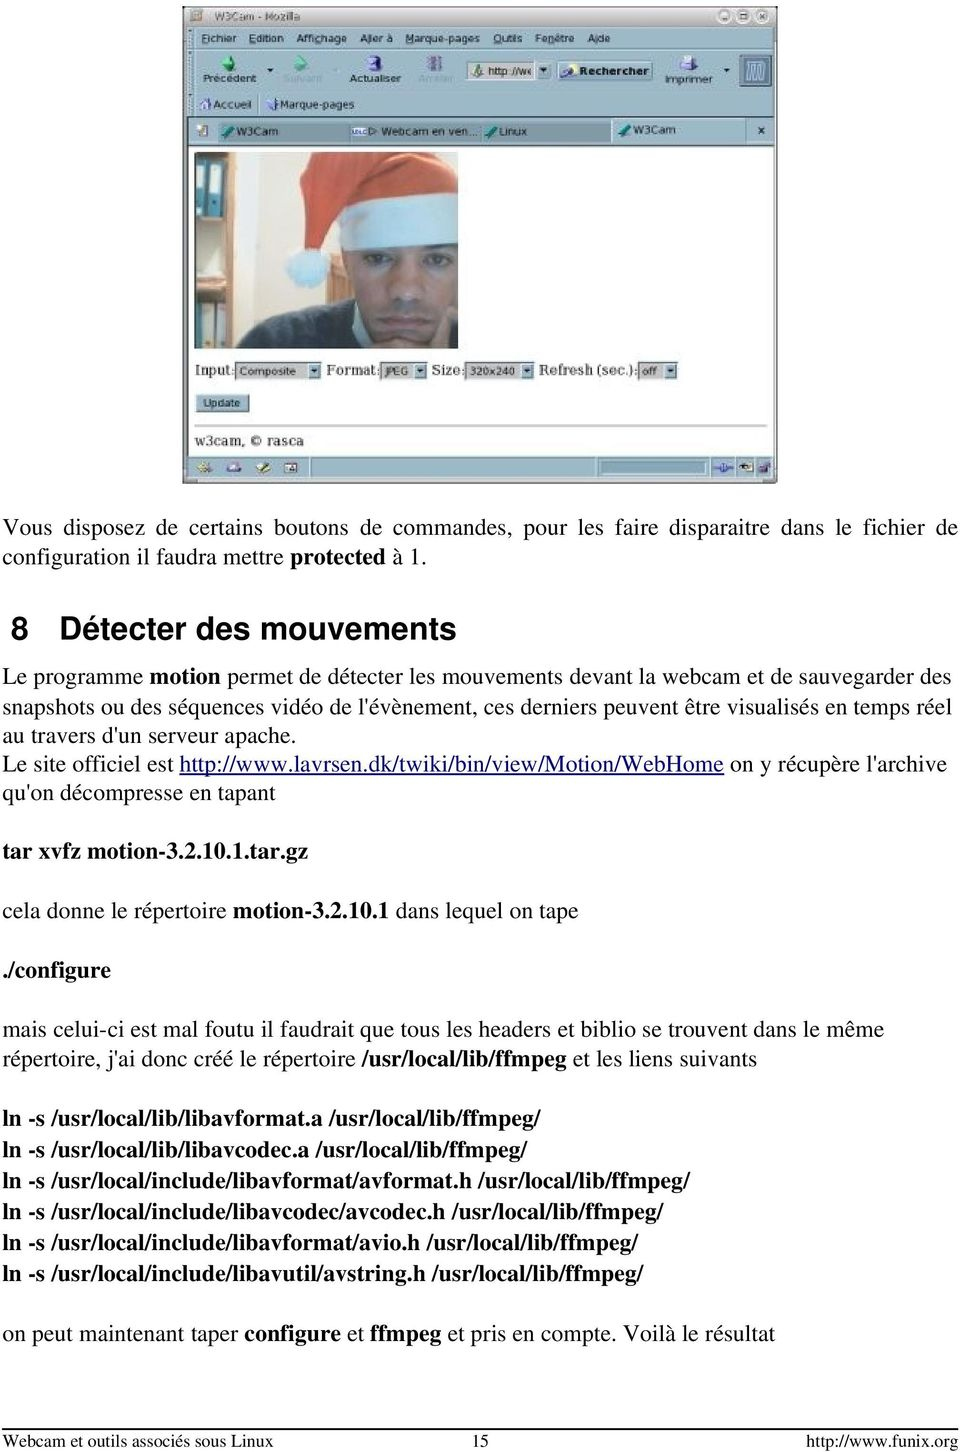 visualisés en temps réel au travers d'un serveur apache. Le site officiel est http://www.lavrsen.dk/twiki/bin/view/motion/webhome on y récupère l'archive qu'on décompresse en tapant tar xvfz motion 3.